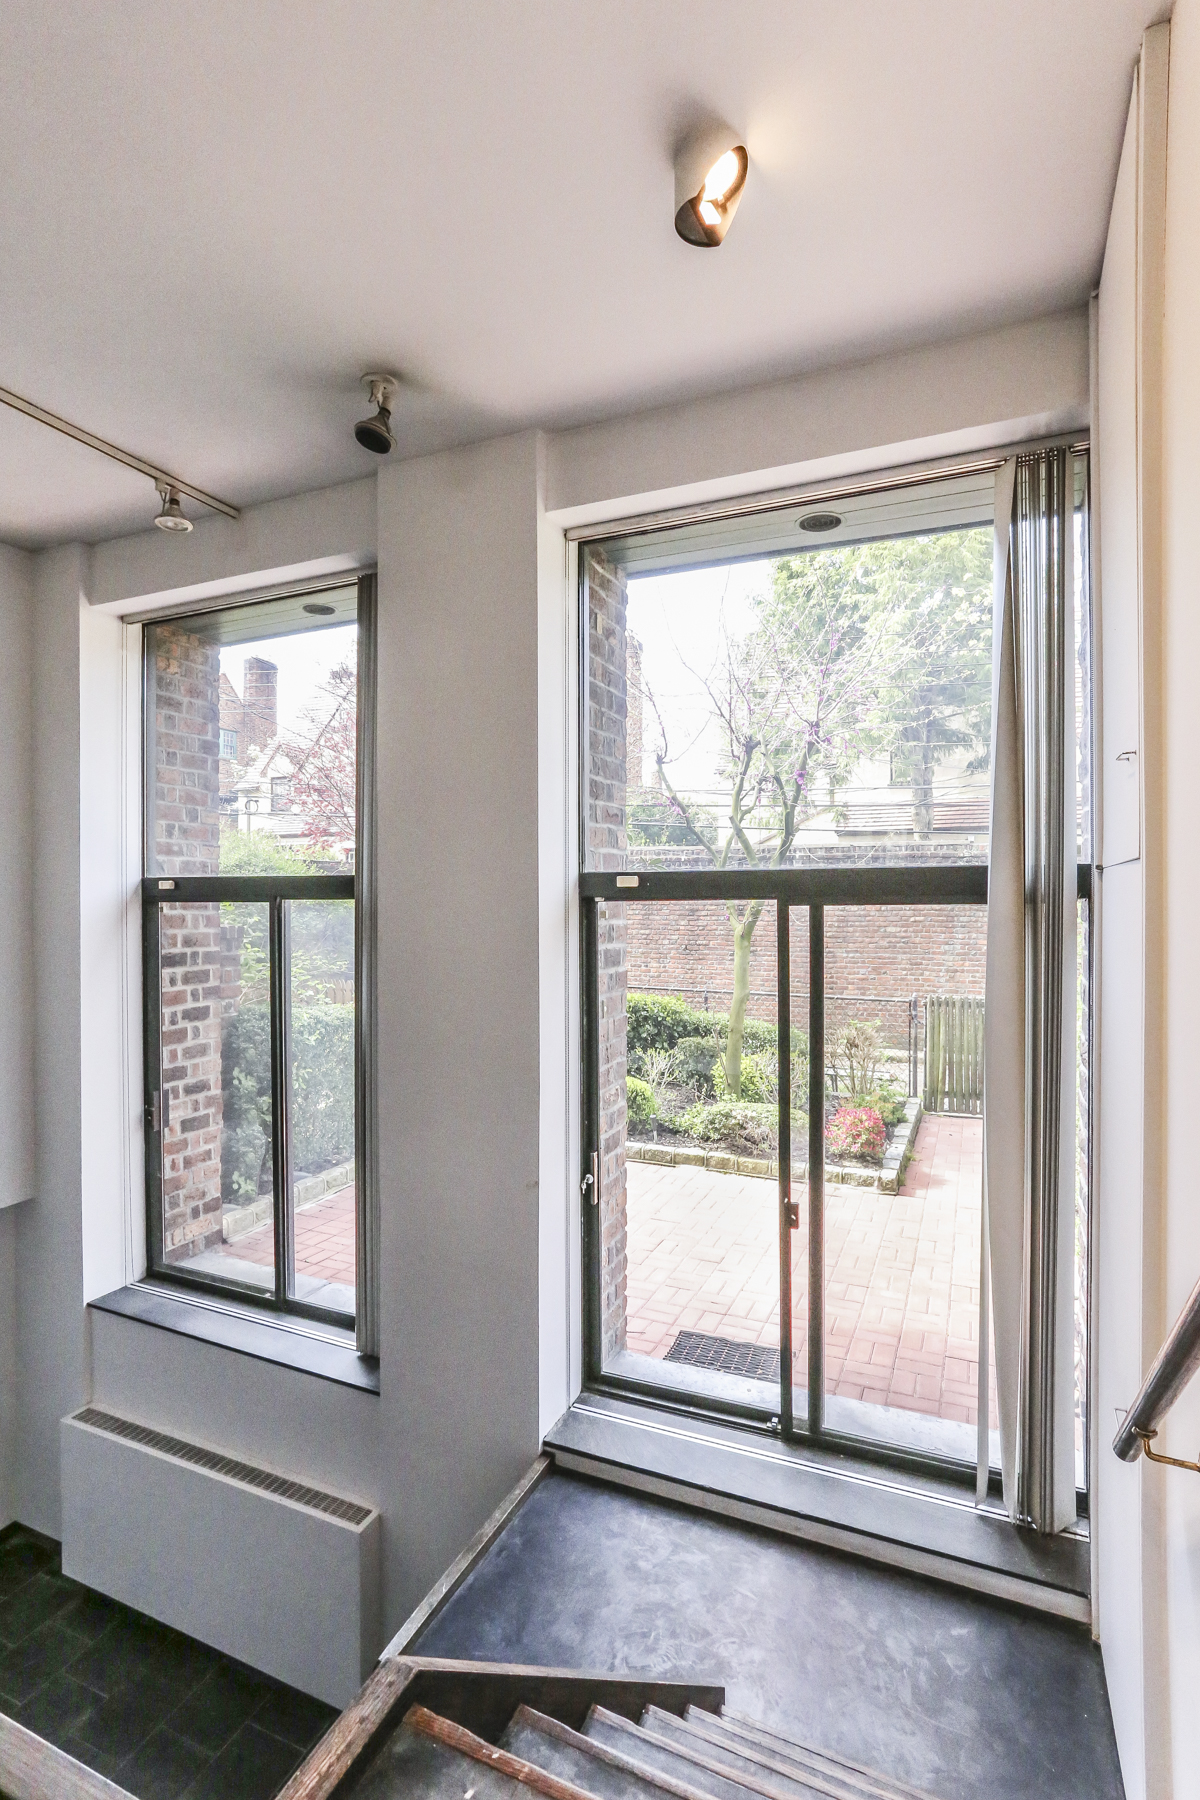 Additional photo for property listing at 39 INGRAM STREET FOREST HILLS GARDENS, NYC  Forest Hills, New York 11375 United States